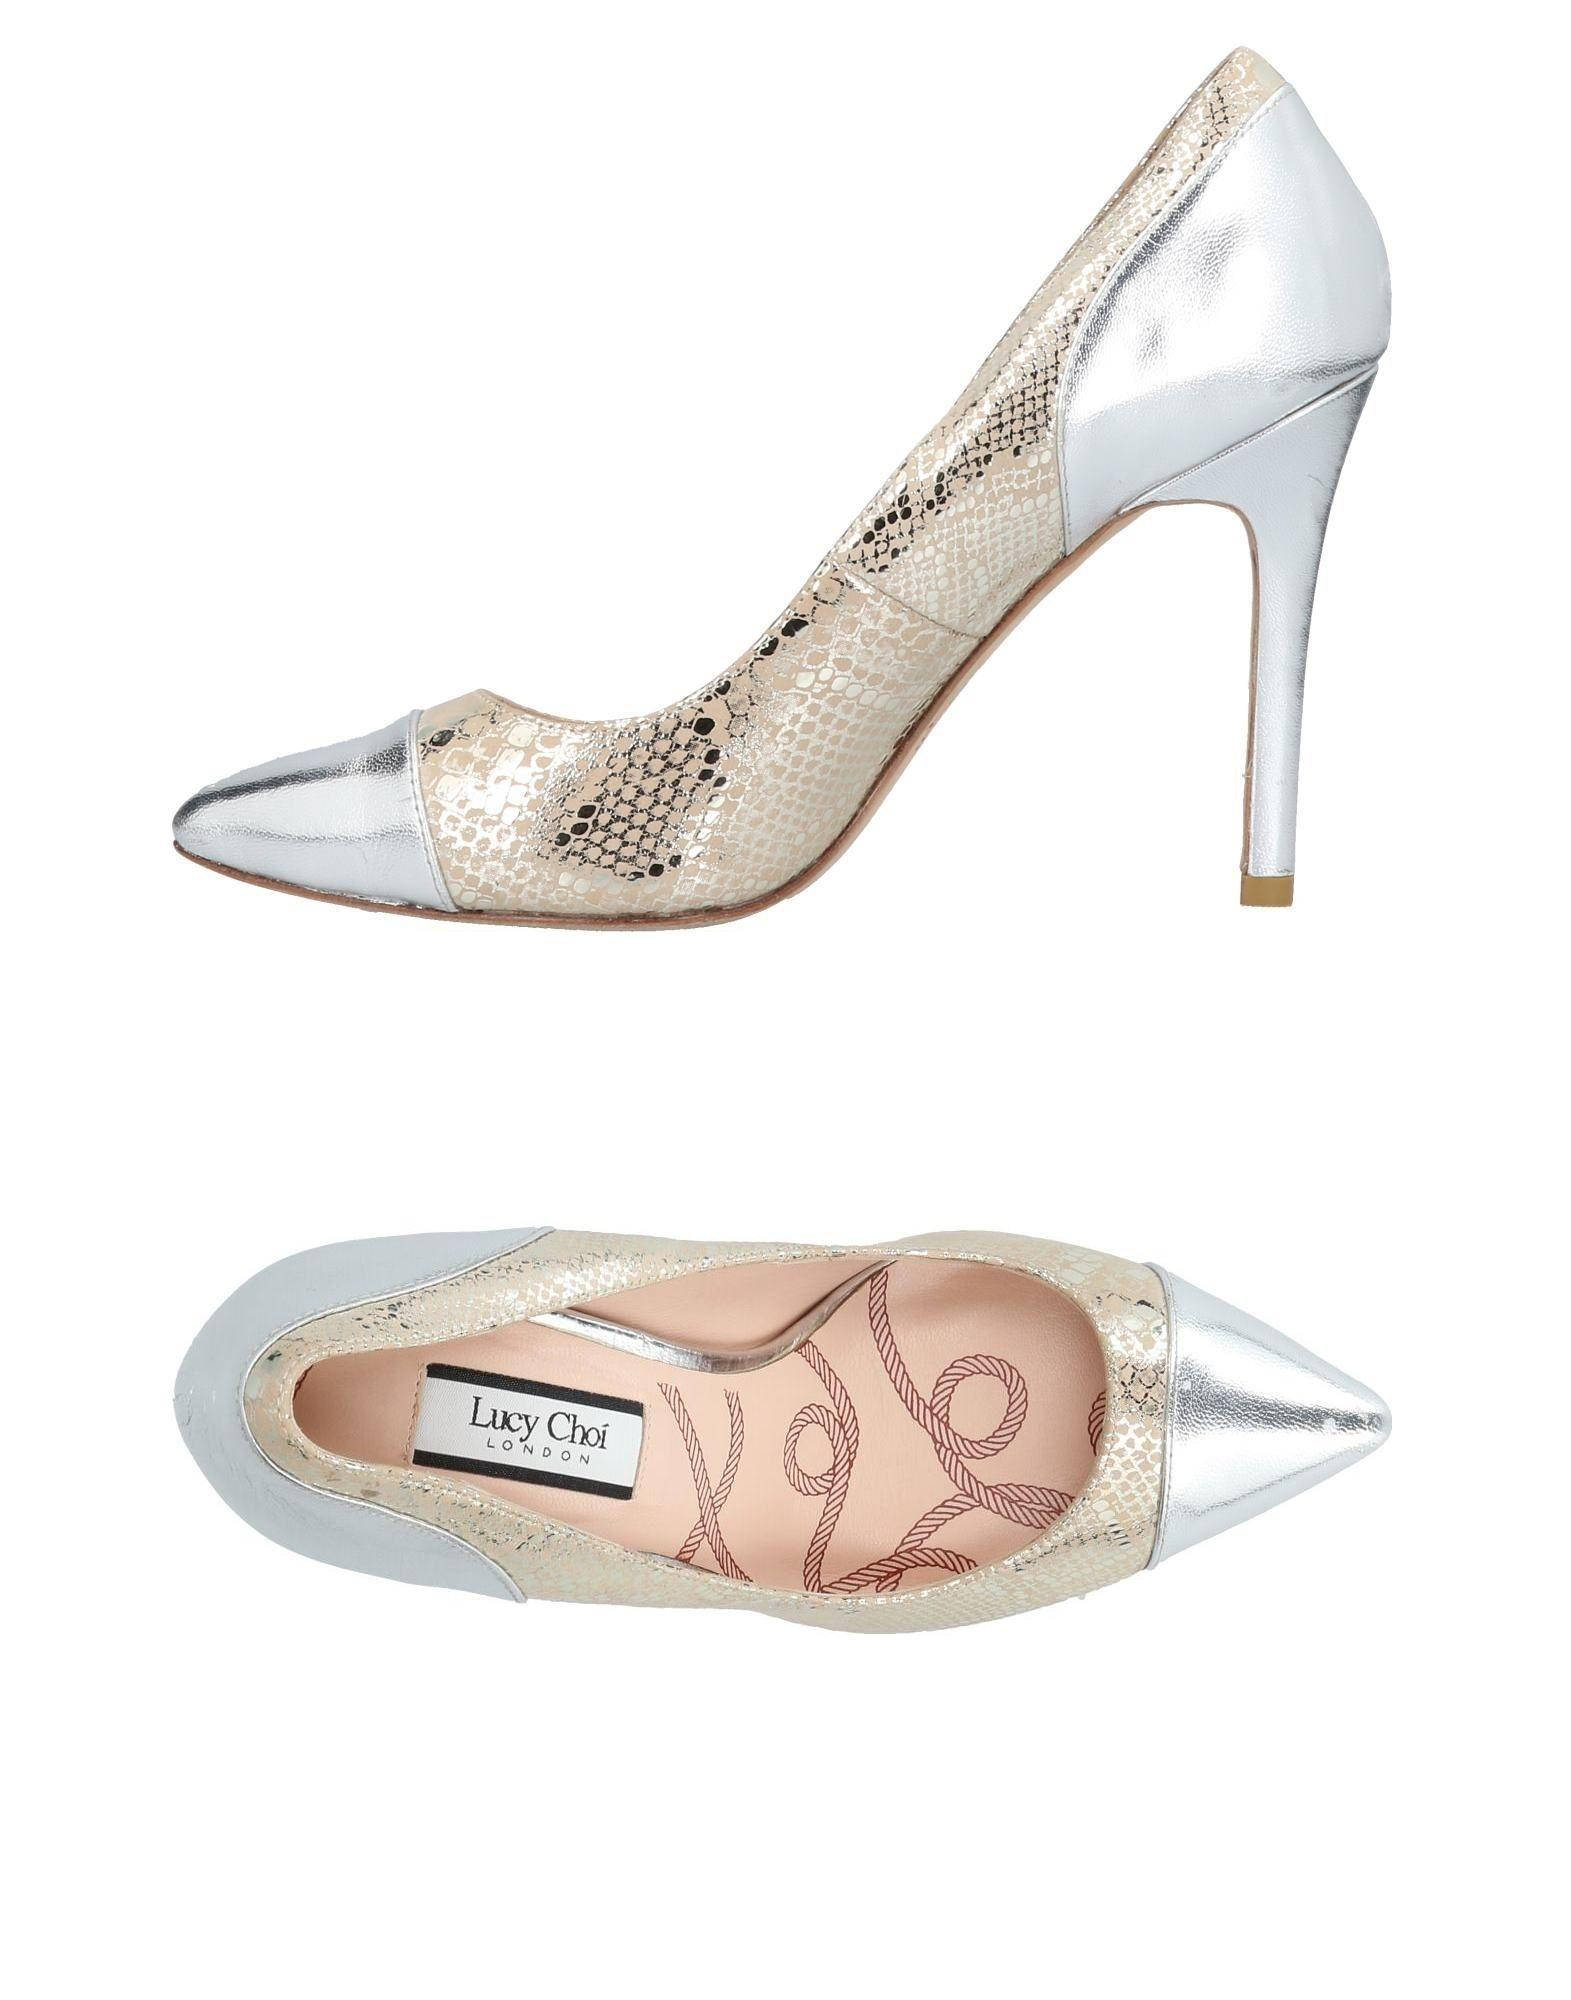 Lucy Choi London Pumps In Platinum